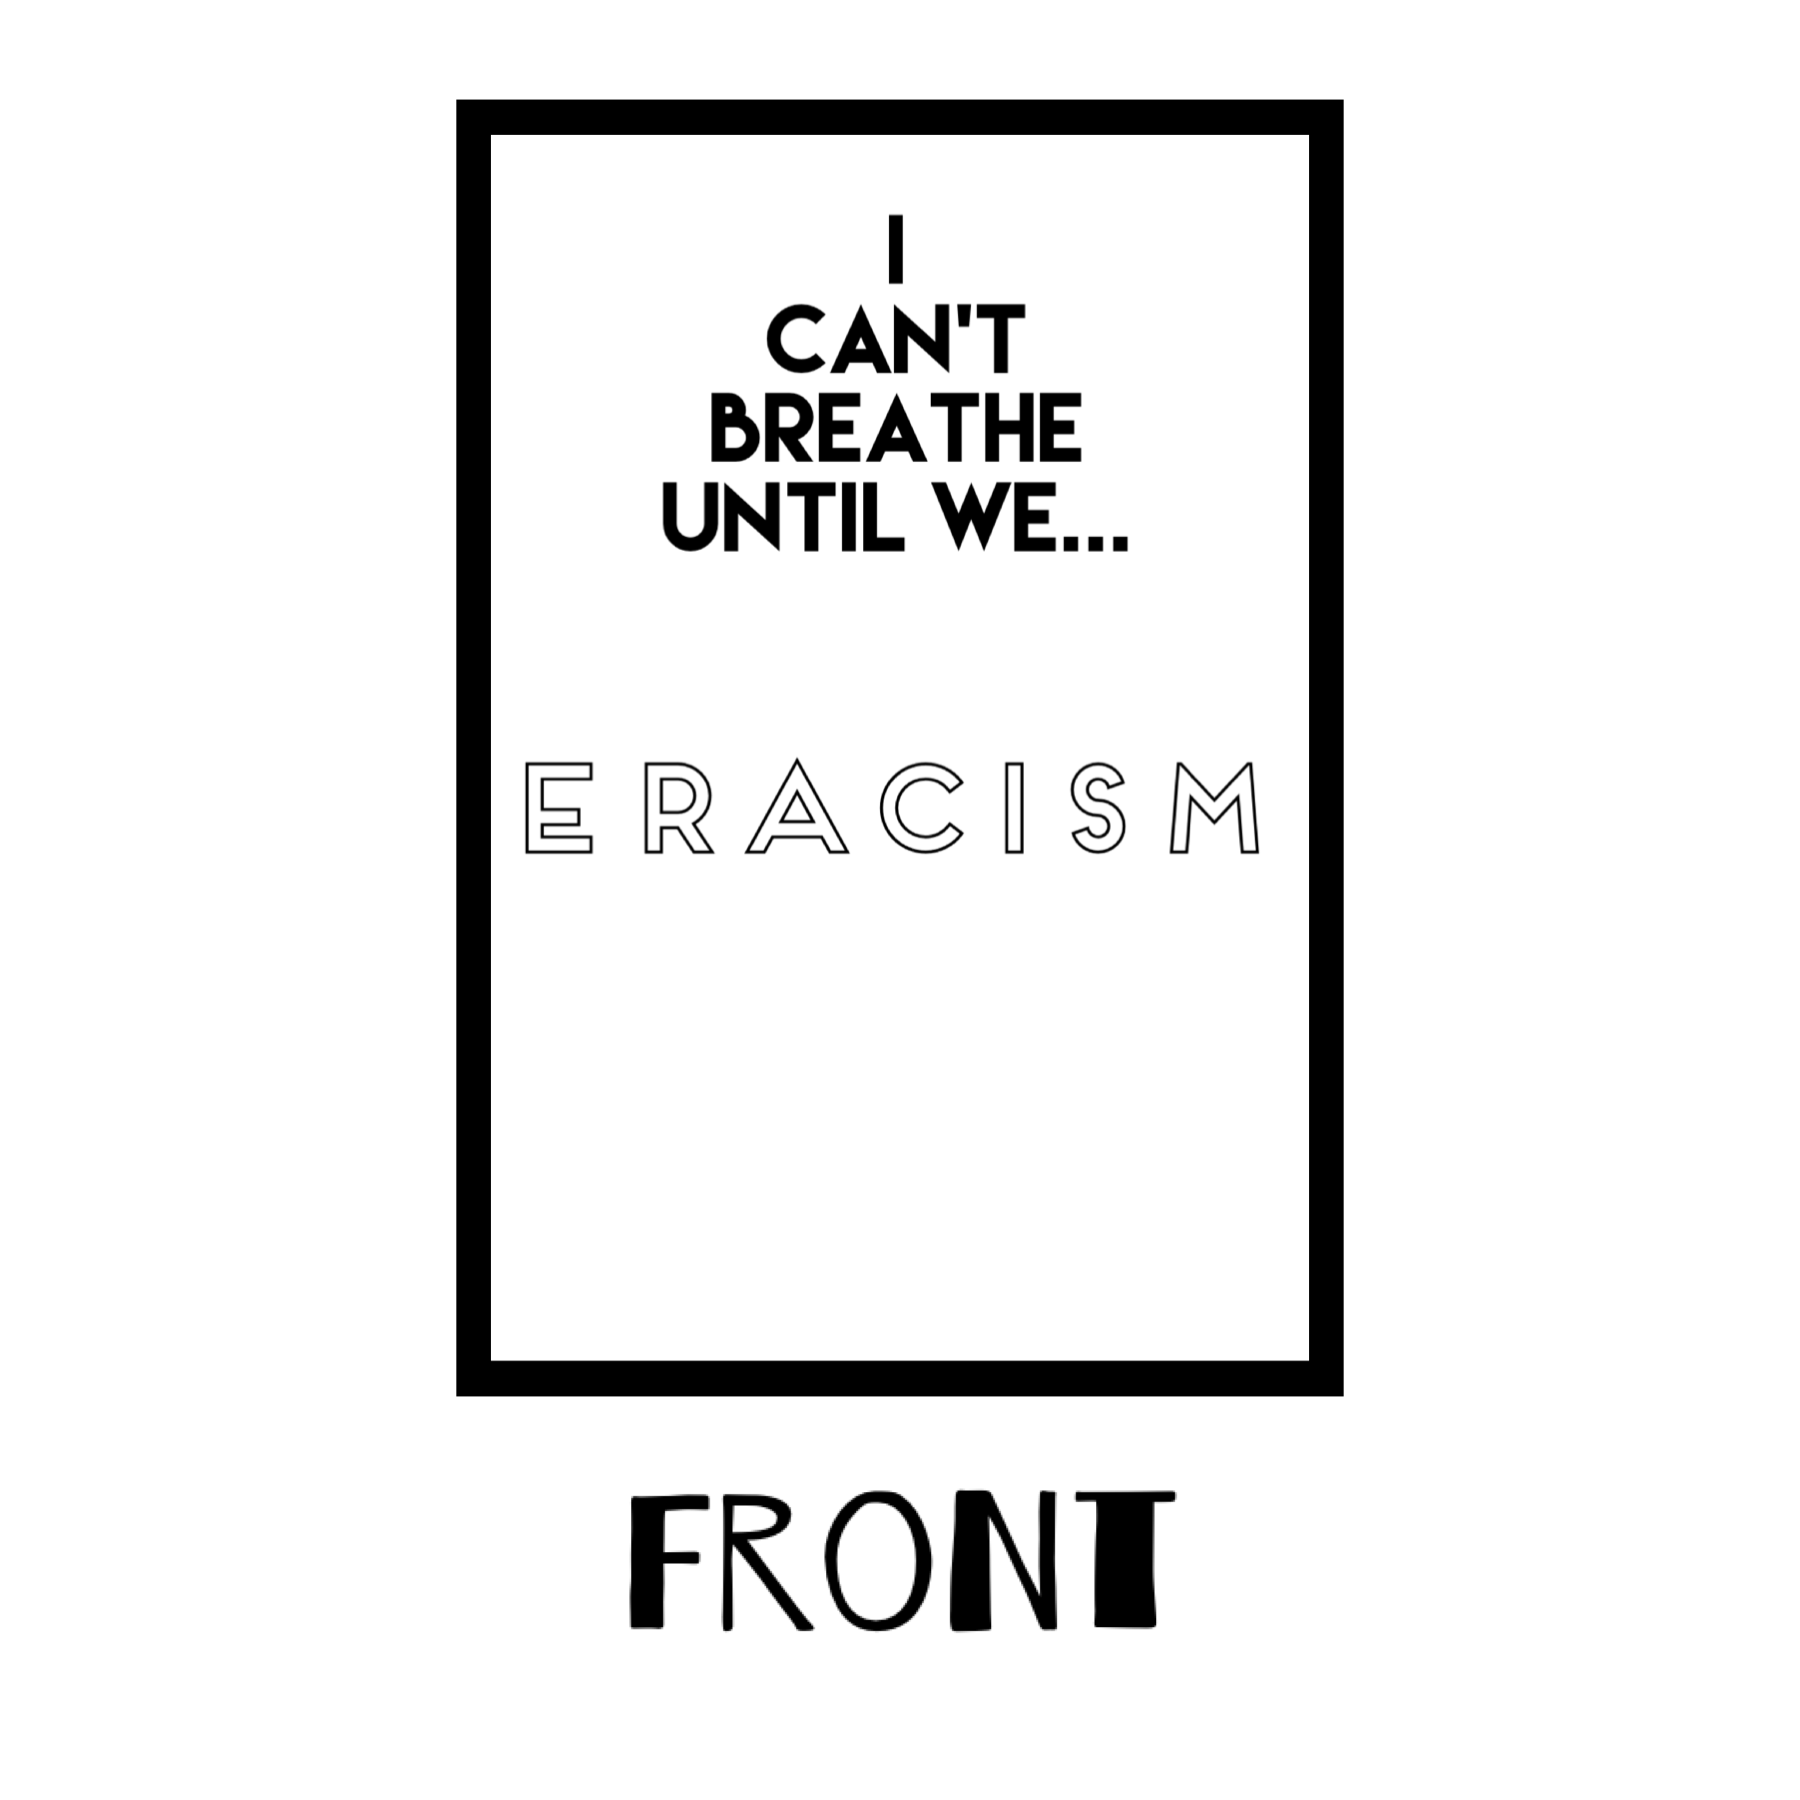 I cant breathe eracism w border